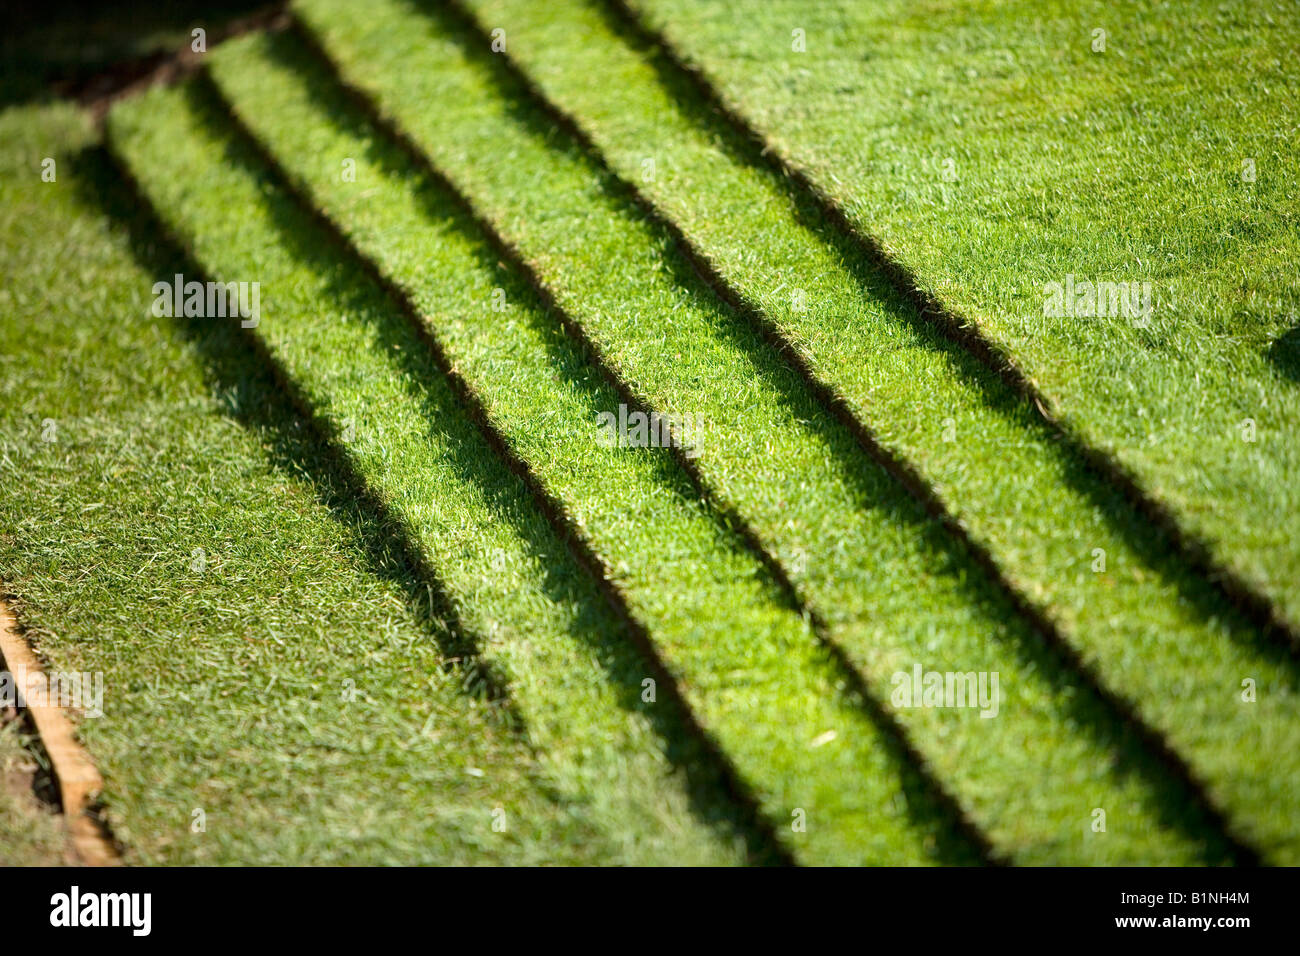 steps in a grass lawn - Stock Image